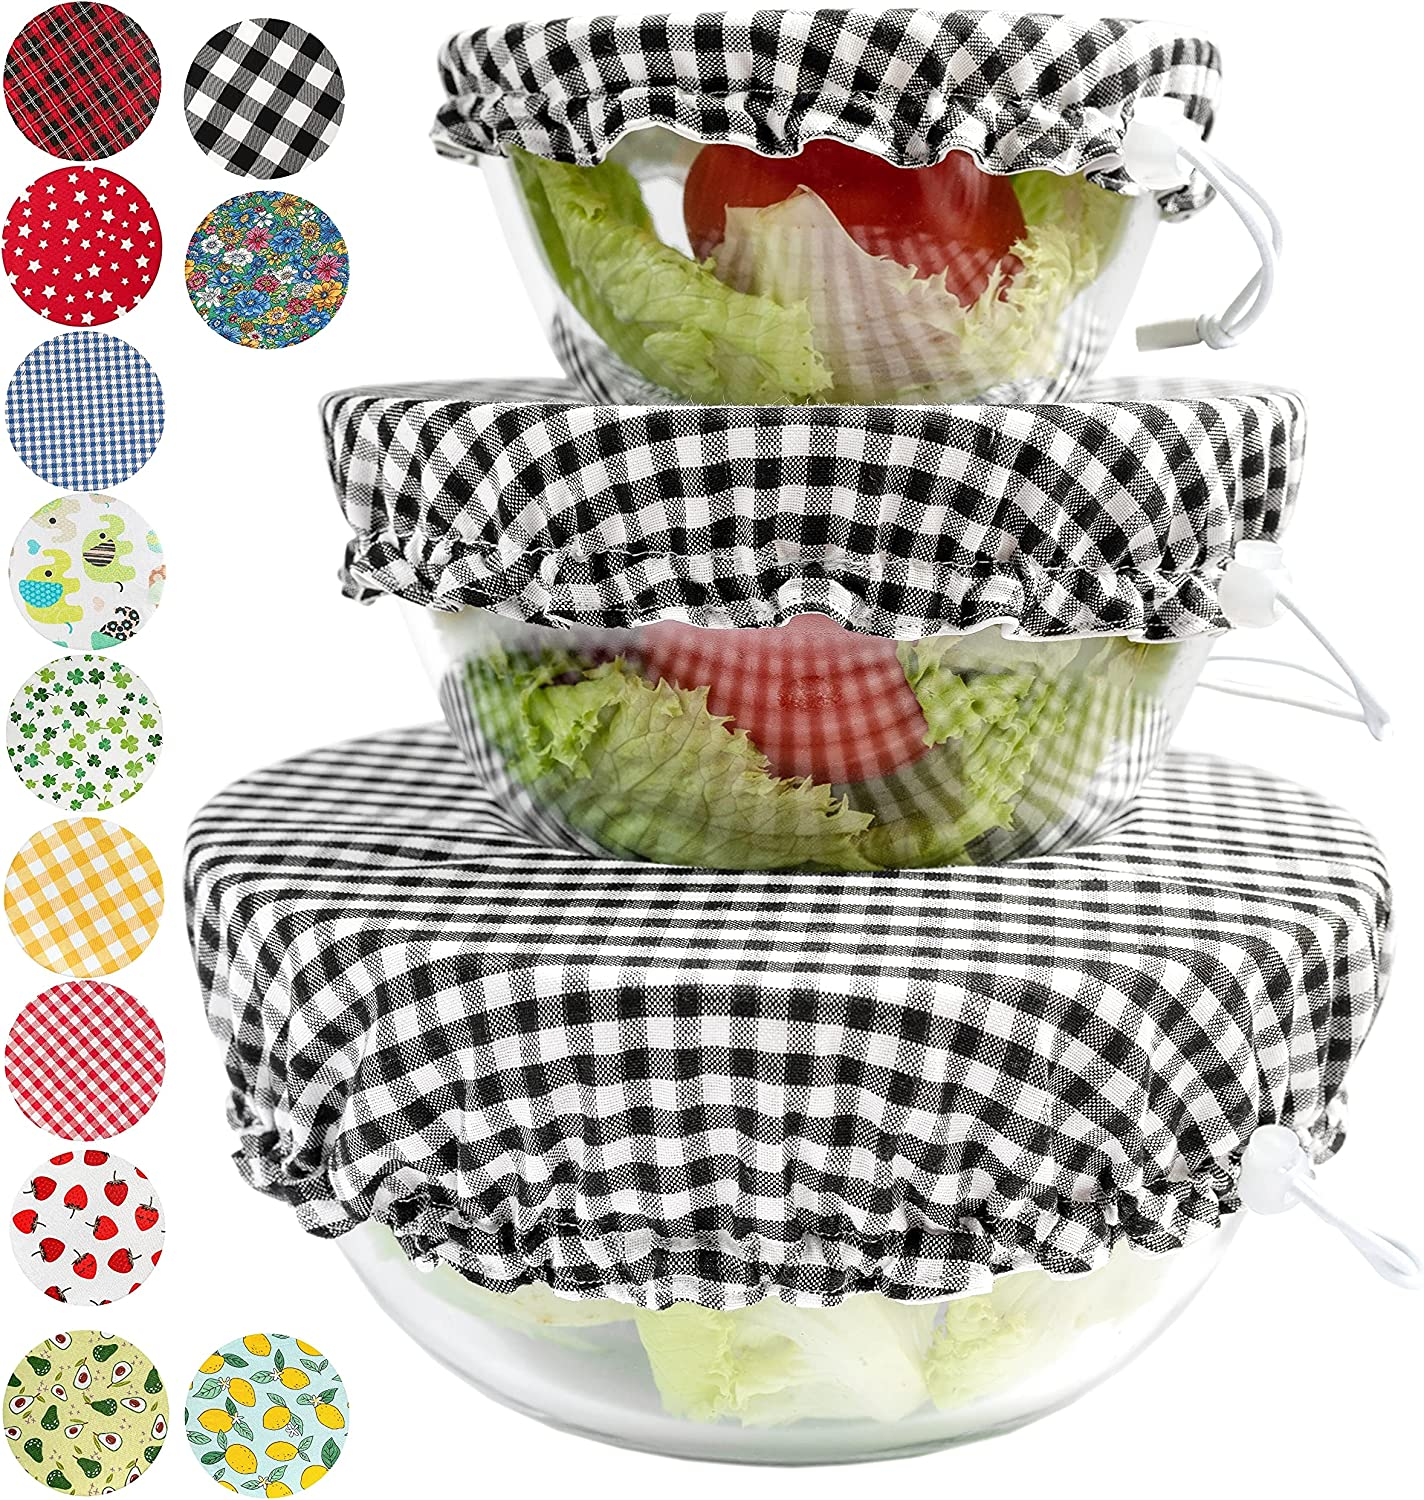 Handmade Reusable Cotton Fabric Bowl Covers - Two Layers of Fabric - Set of 3 (Black plaid)